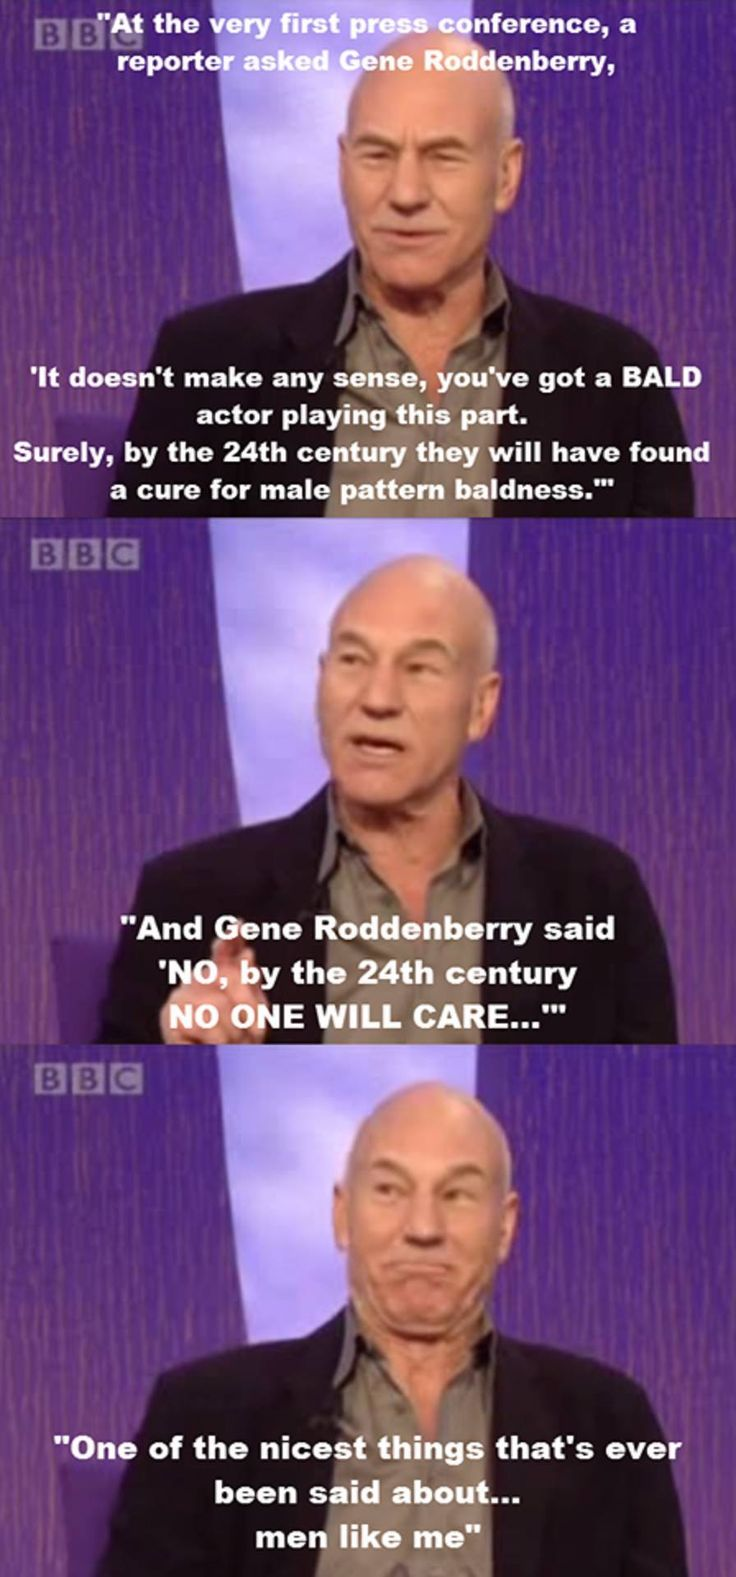 Aw. Patrick Stewart doesn't need to justify his baldness. He's the f***ing captain of the Enterprise!